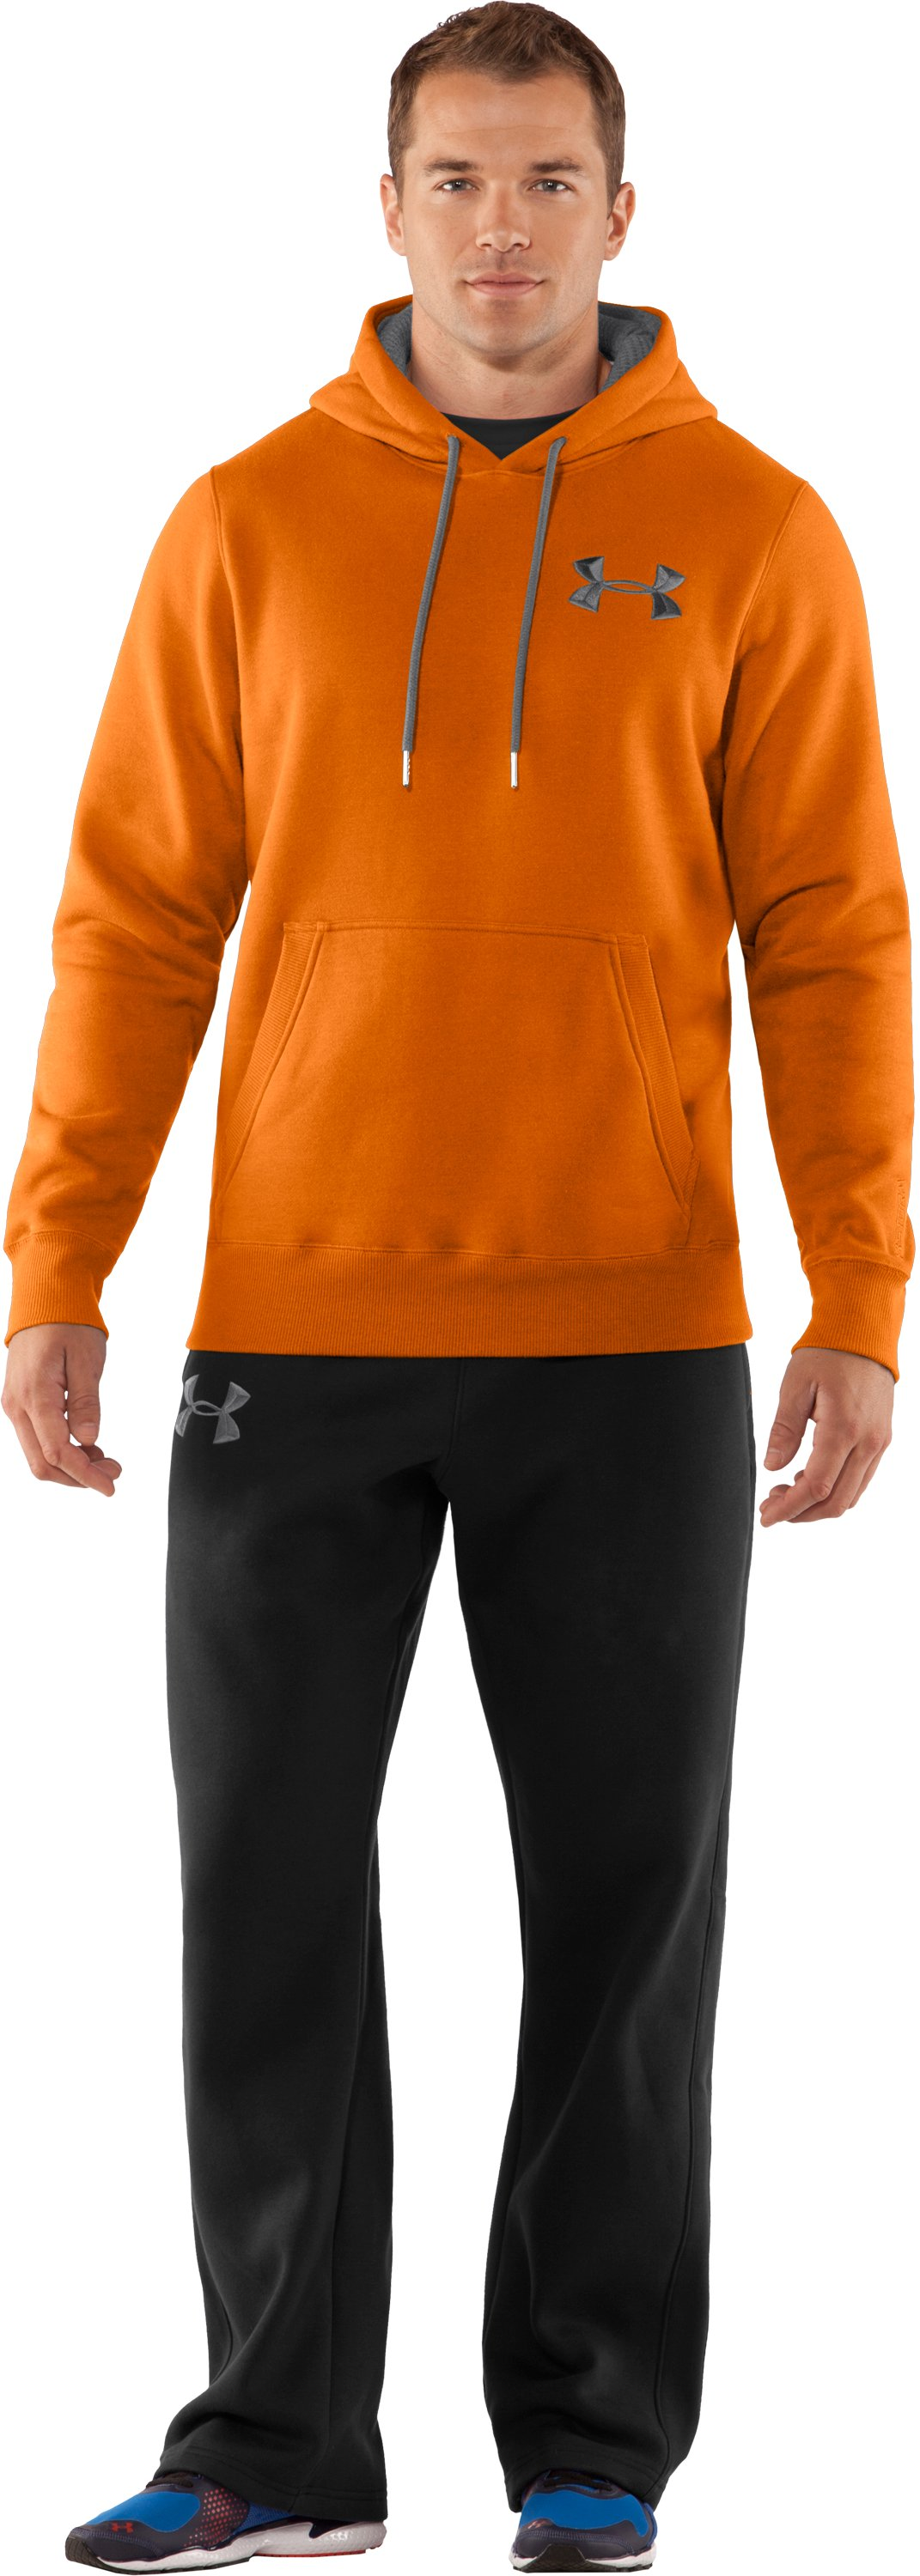 Men's Charged Cotton® Storm Pullover Hoodie, Radiate